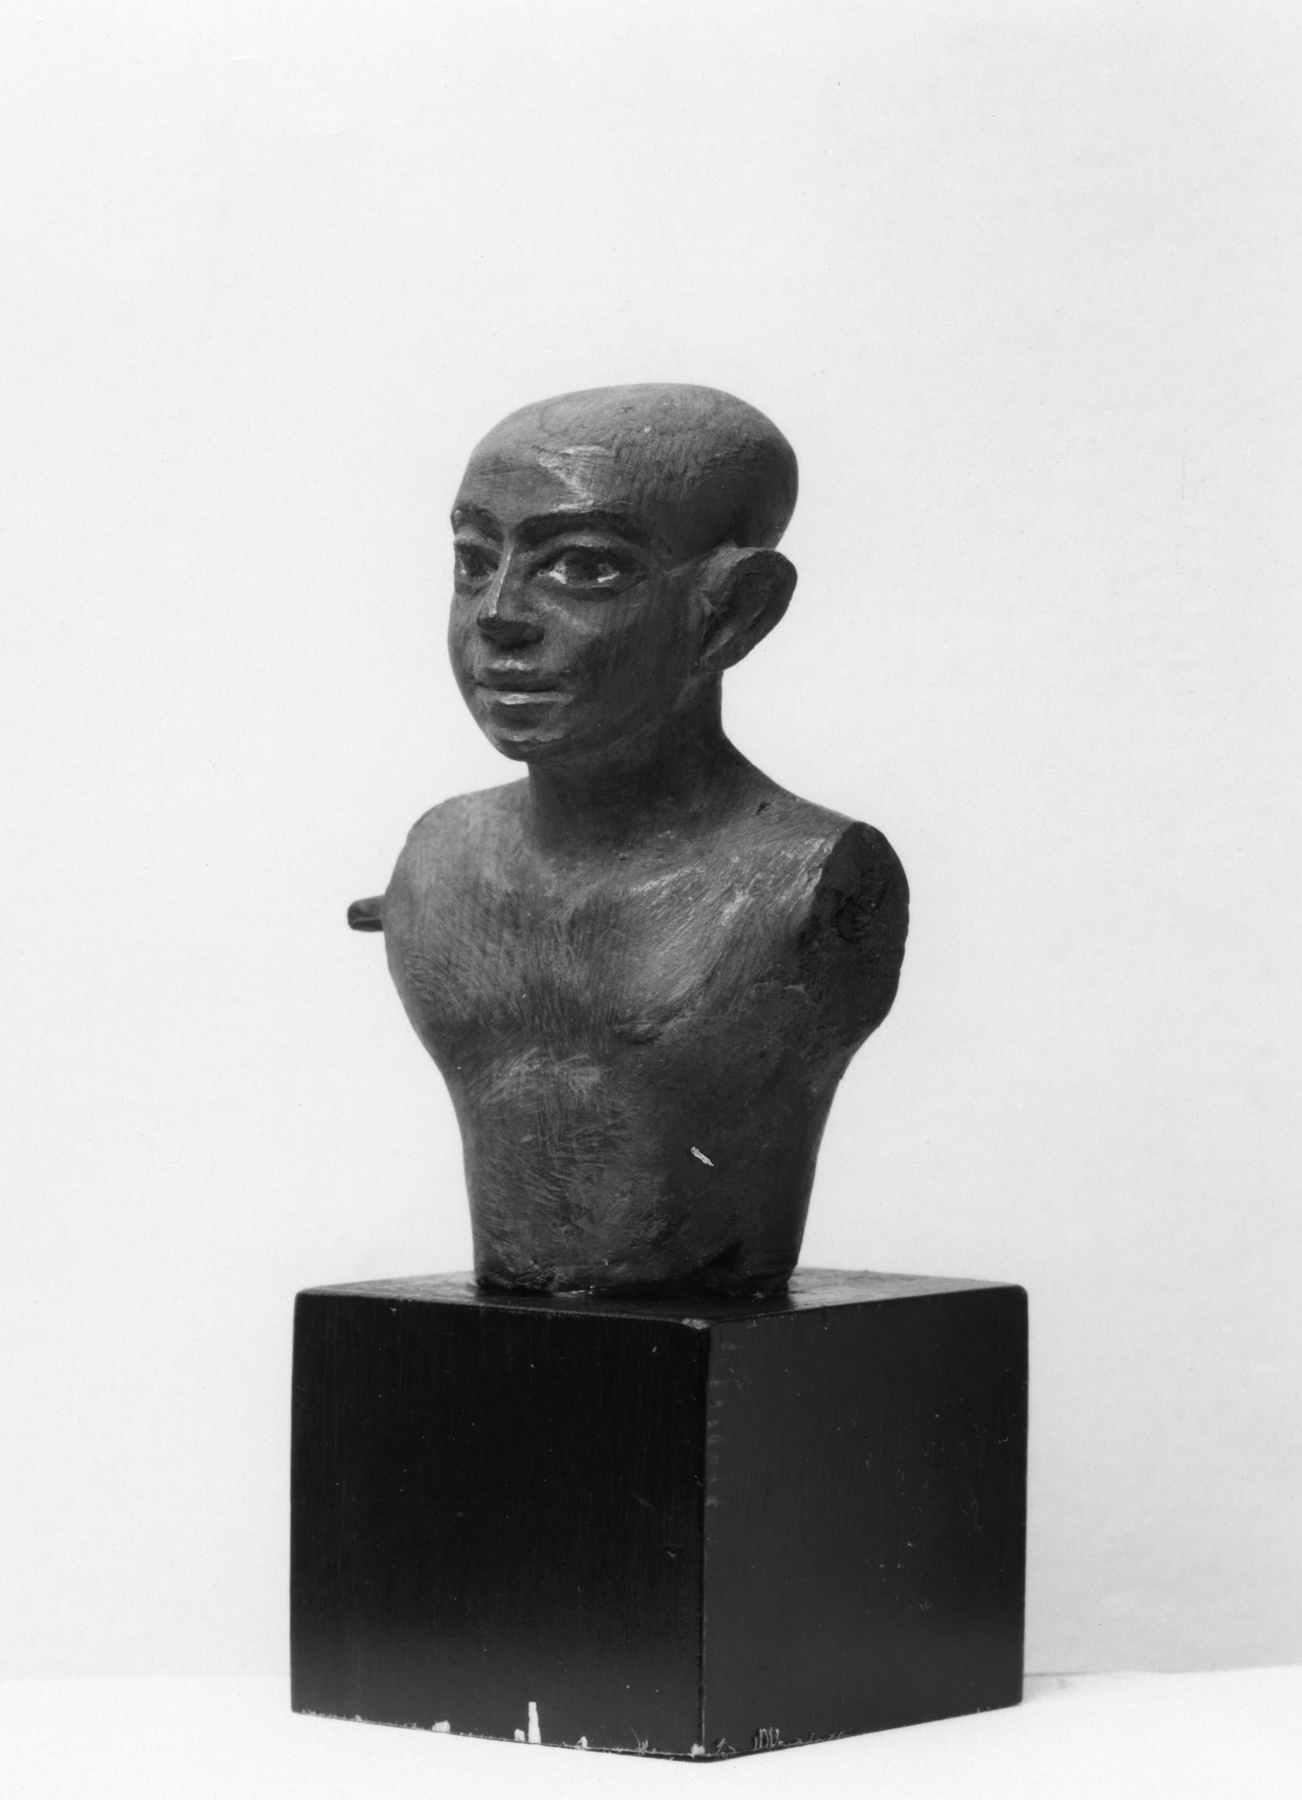 File:Egyptian - Nude Male Bust - Walters 22233 - Three Quarter.jpg